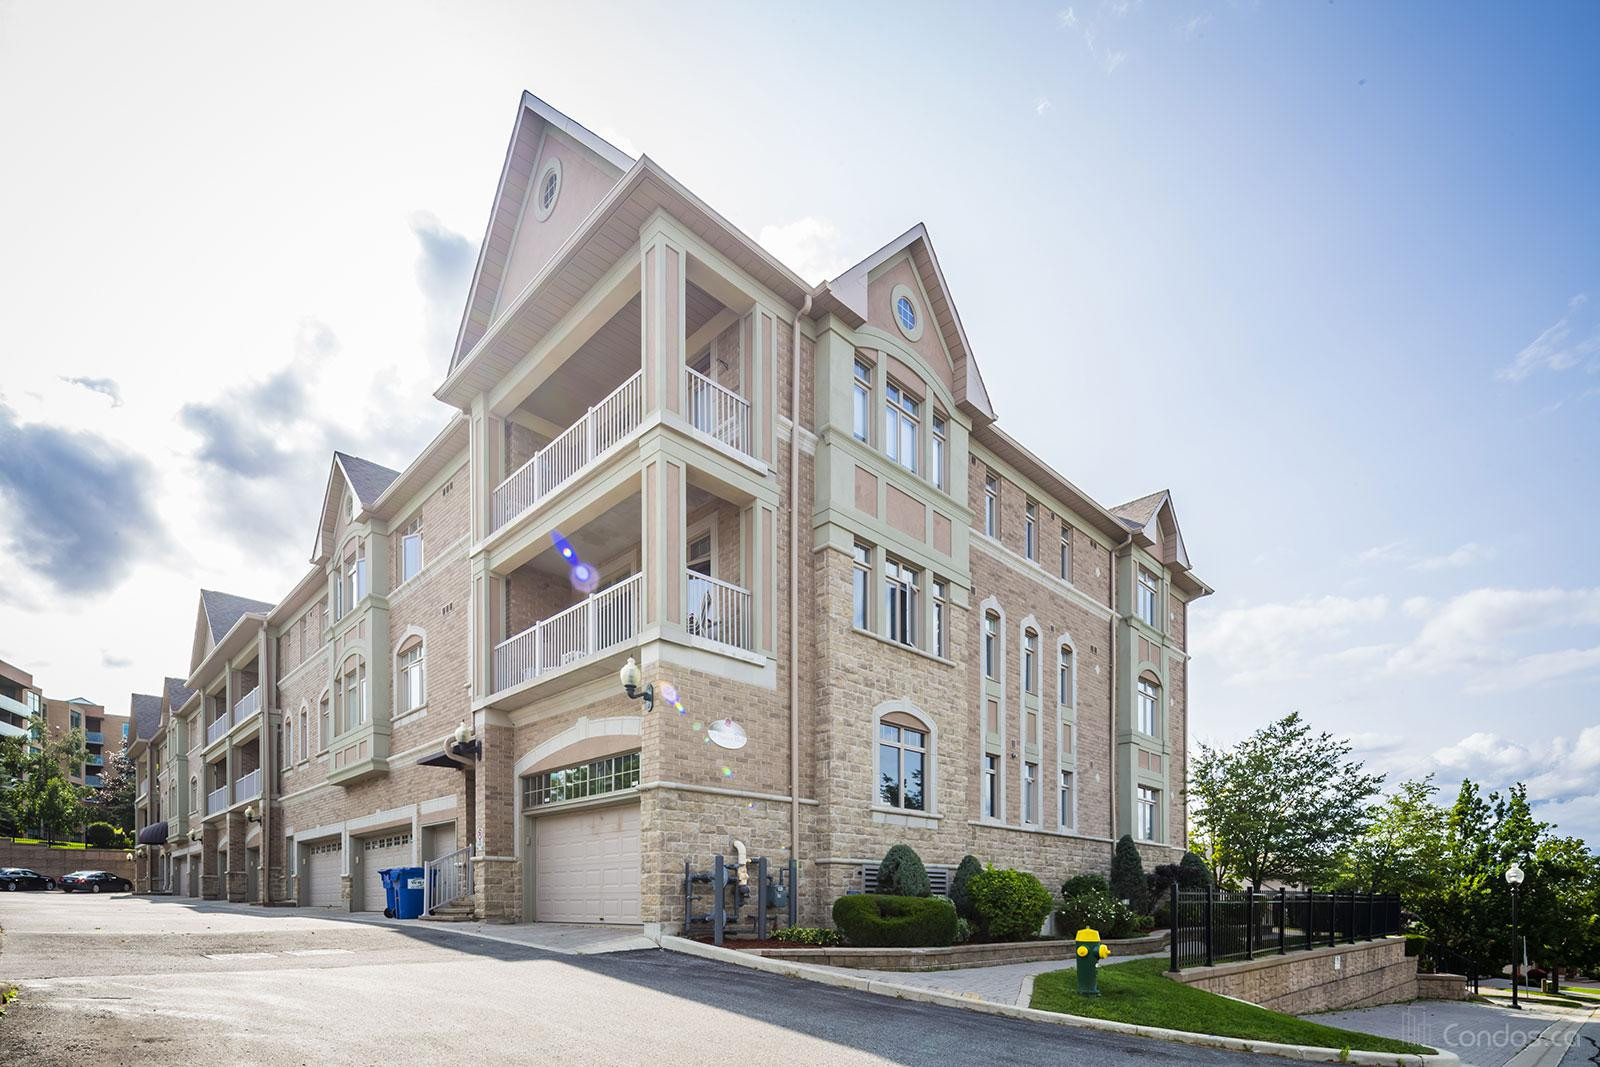 78 Sunset Condos at 78 Sunset Blvd, New Tecumseth 0